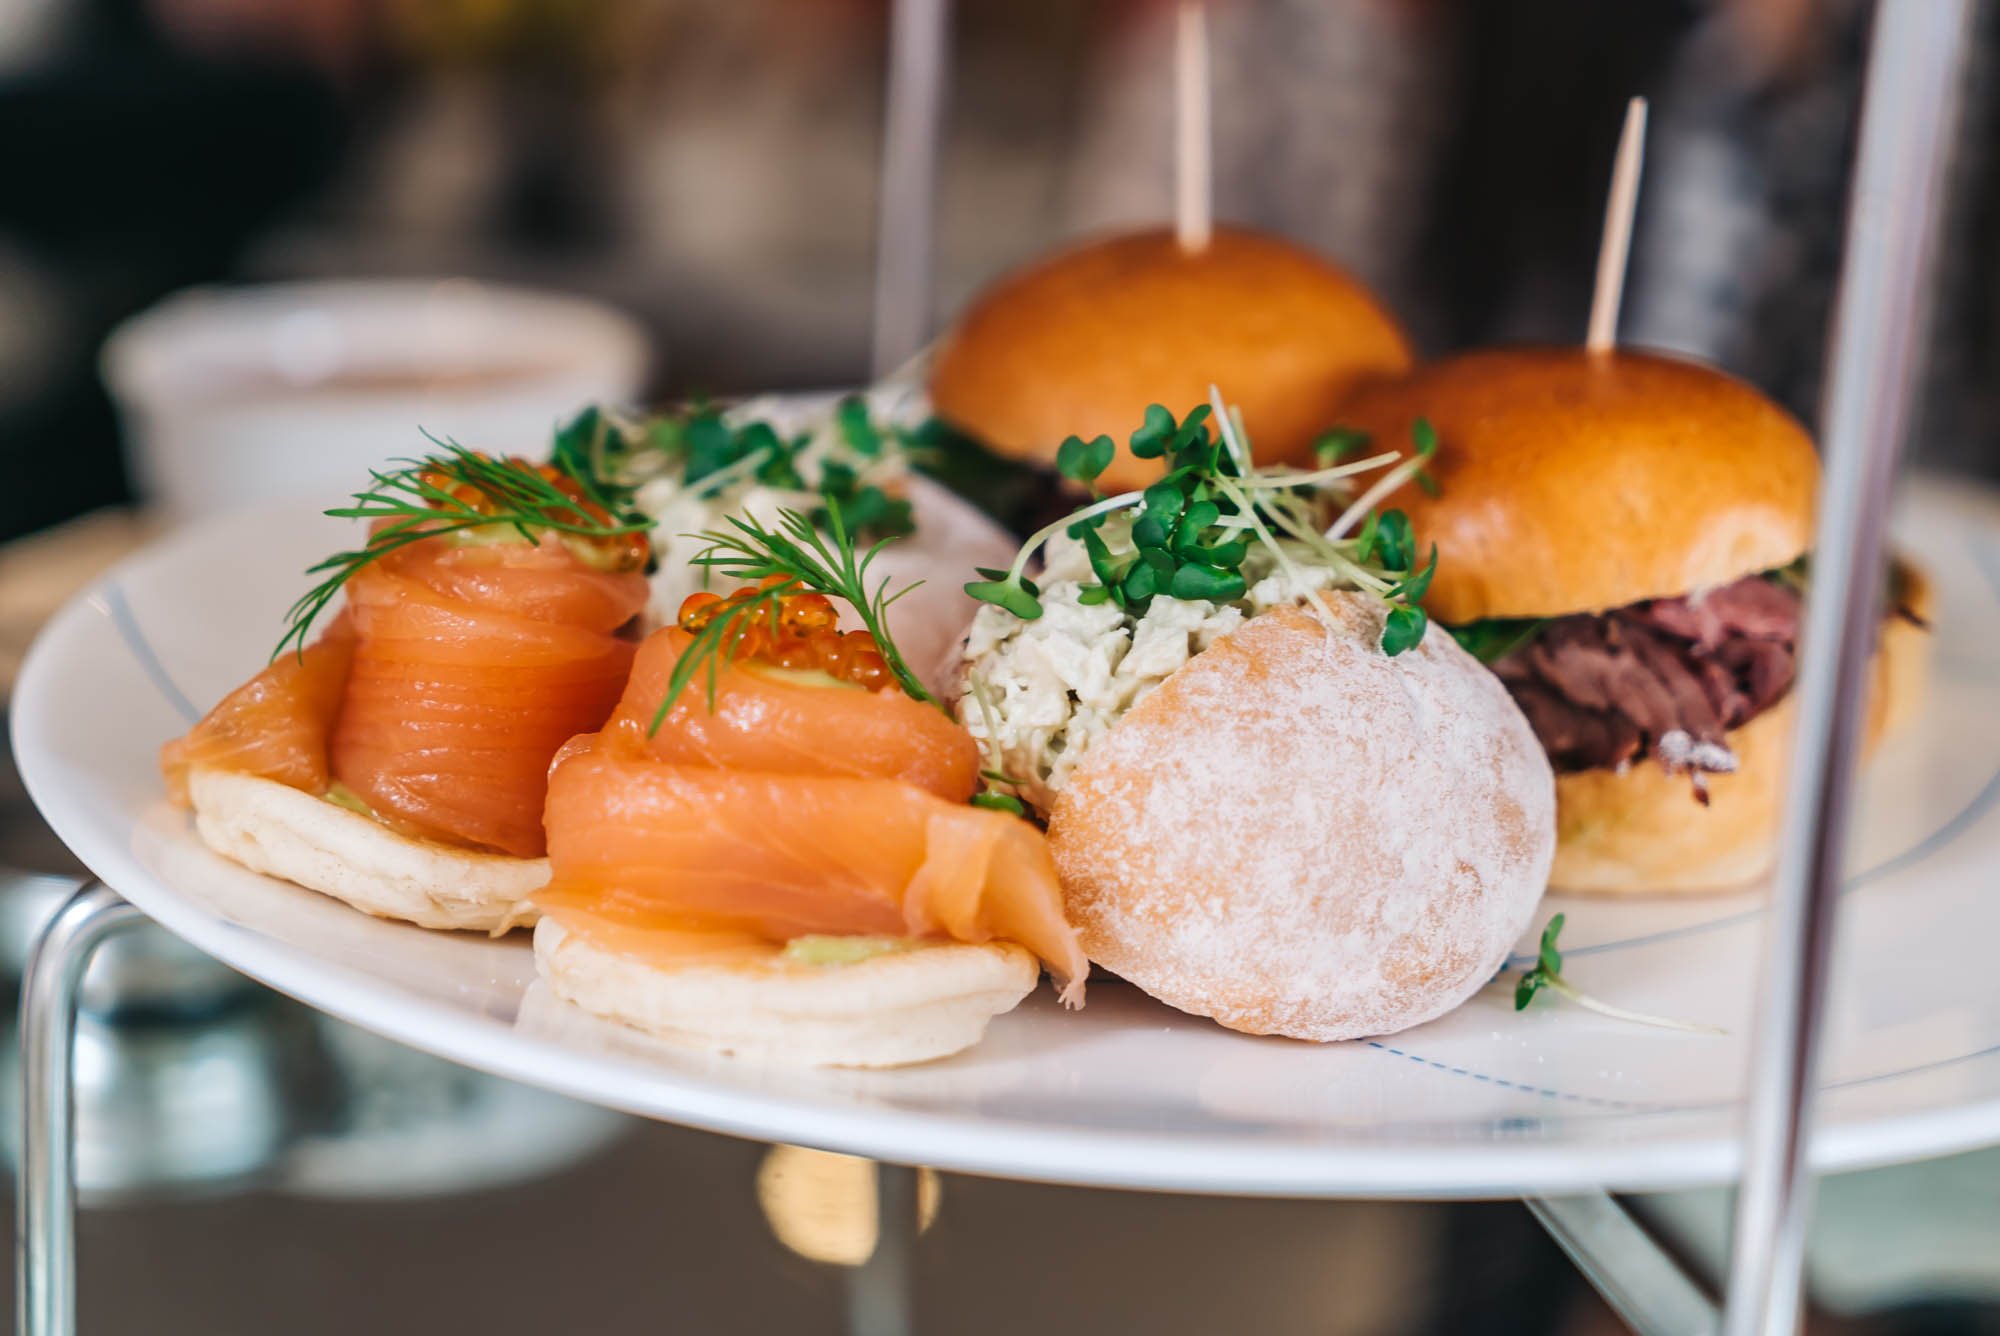 Smoked Salmon & Avocado on Blinis, Brioche with Roast Beef, Watercress, Cornichons, and Chicken with Basil & Lemon Mayonnaise on a Bun